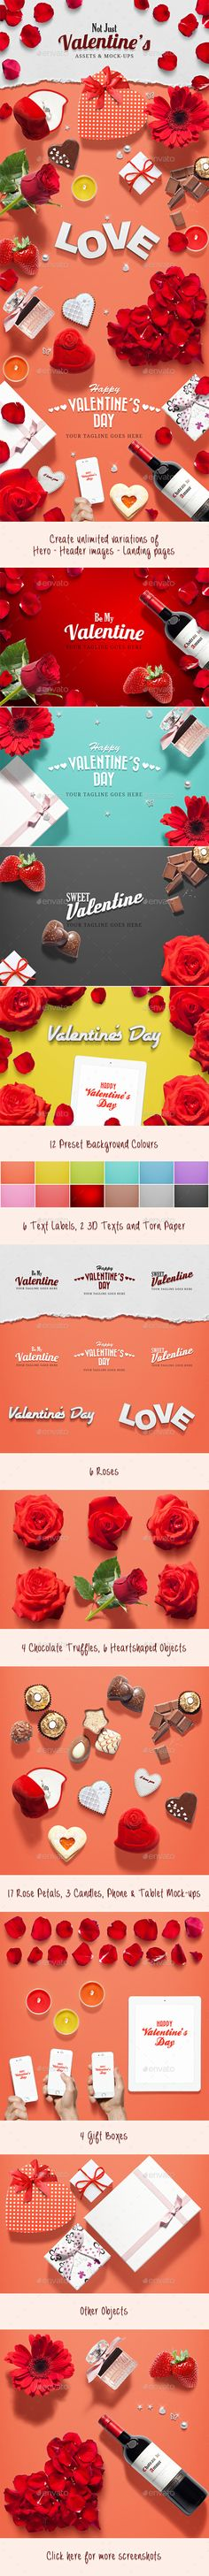 Love / Valentine's Day Scene Creator | Buy and Download: http://graphicriver.net/item/love-valentines-day-scene-creator/10034553?ref=ksioks